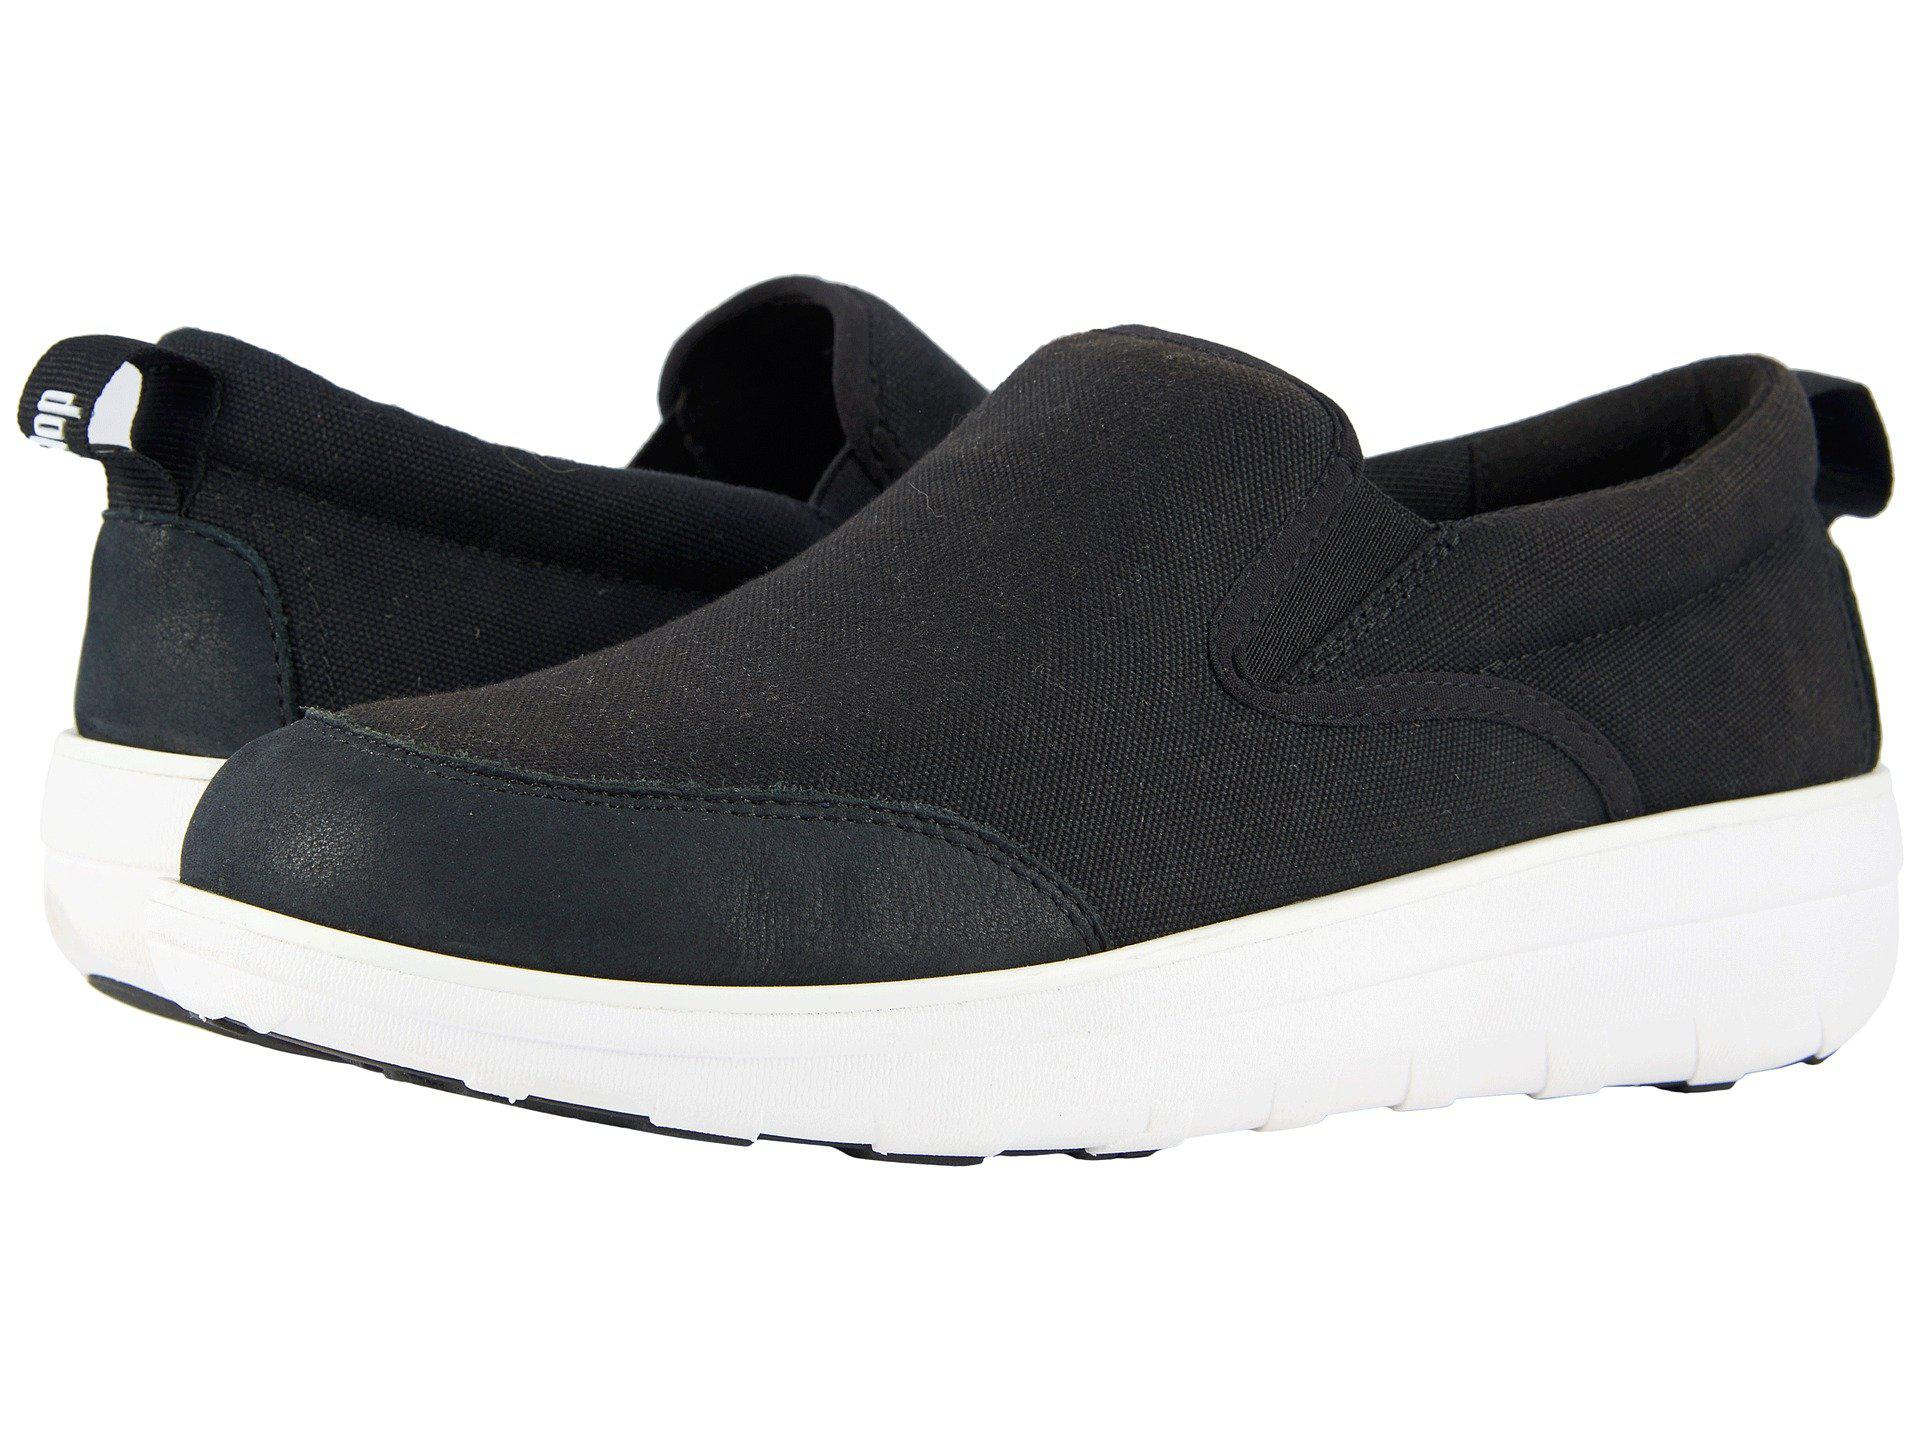 6948cc4b470 Lyst - Fitflop Loaff Skate in Black for Men